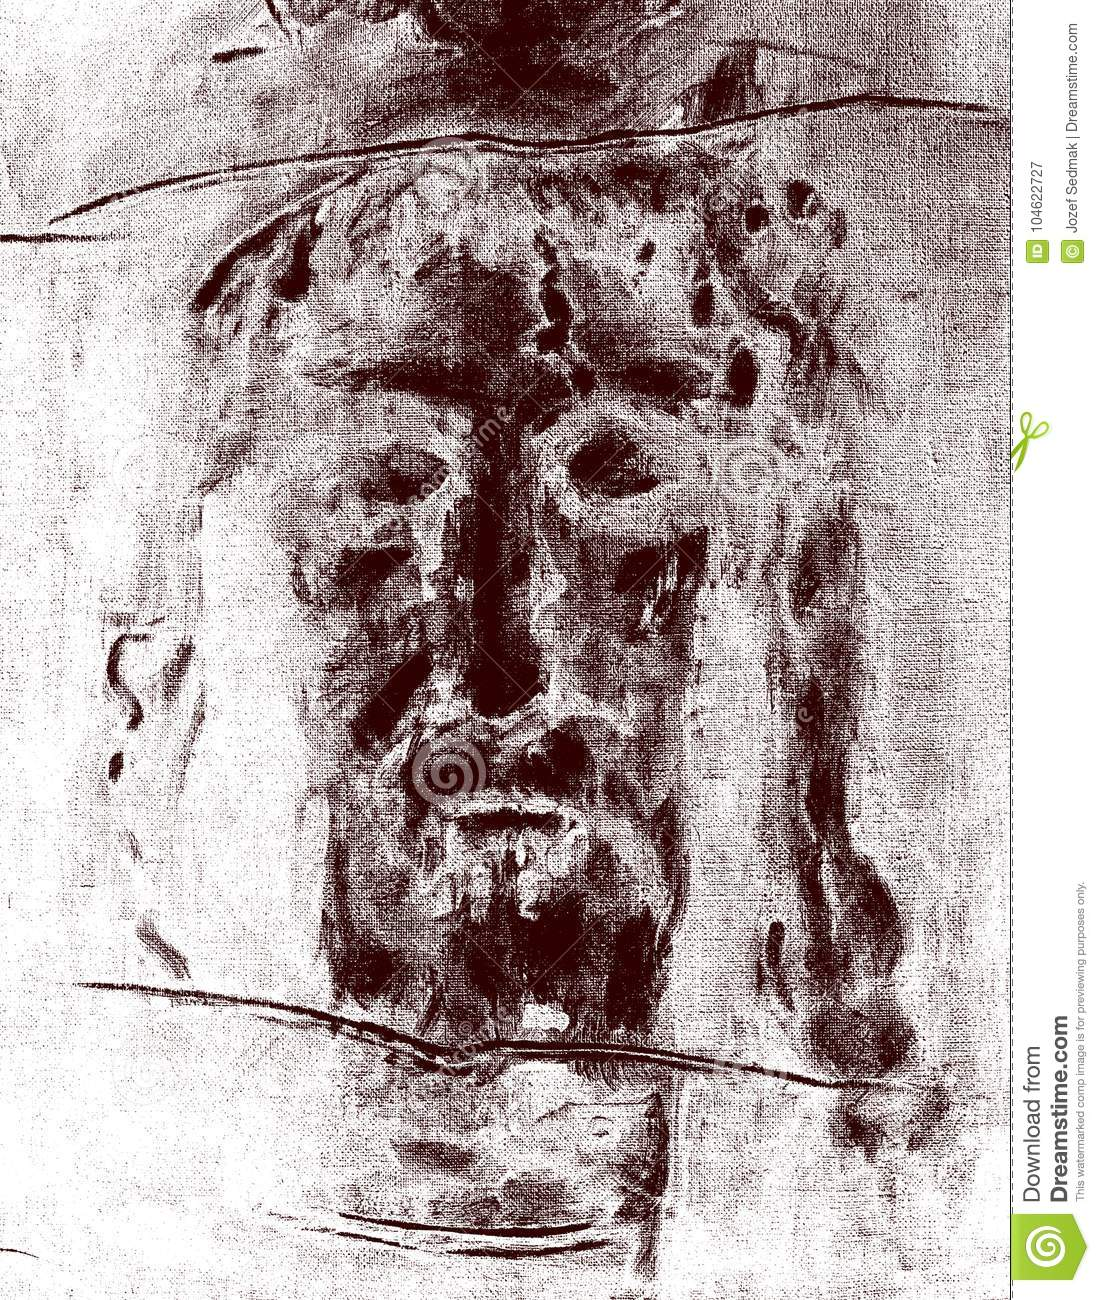 The Graphic Inspired By Jesus Christ Face From Shroud Of Turin Stock